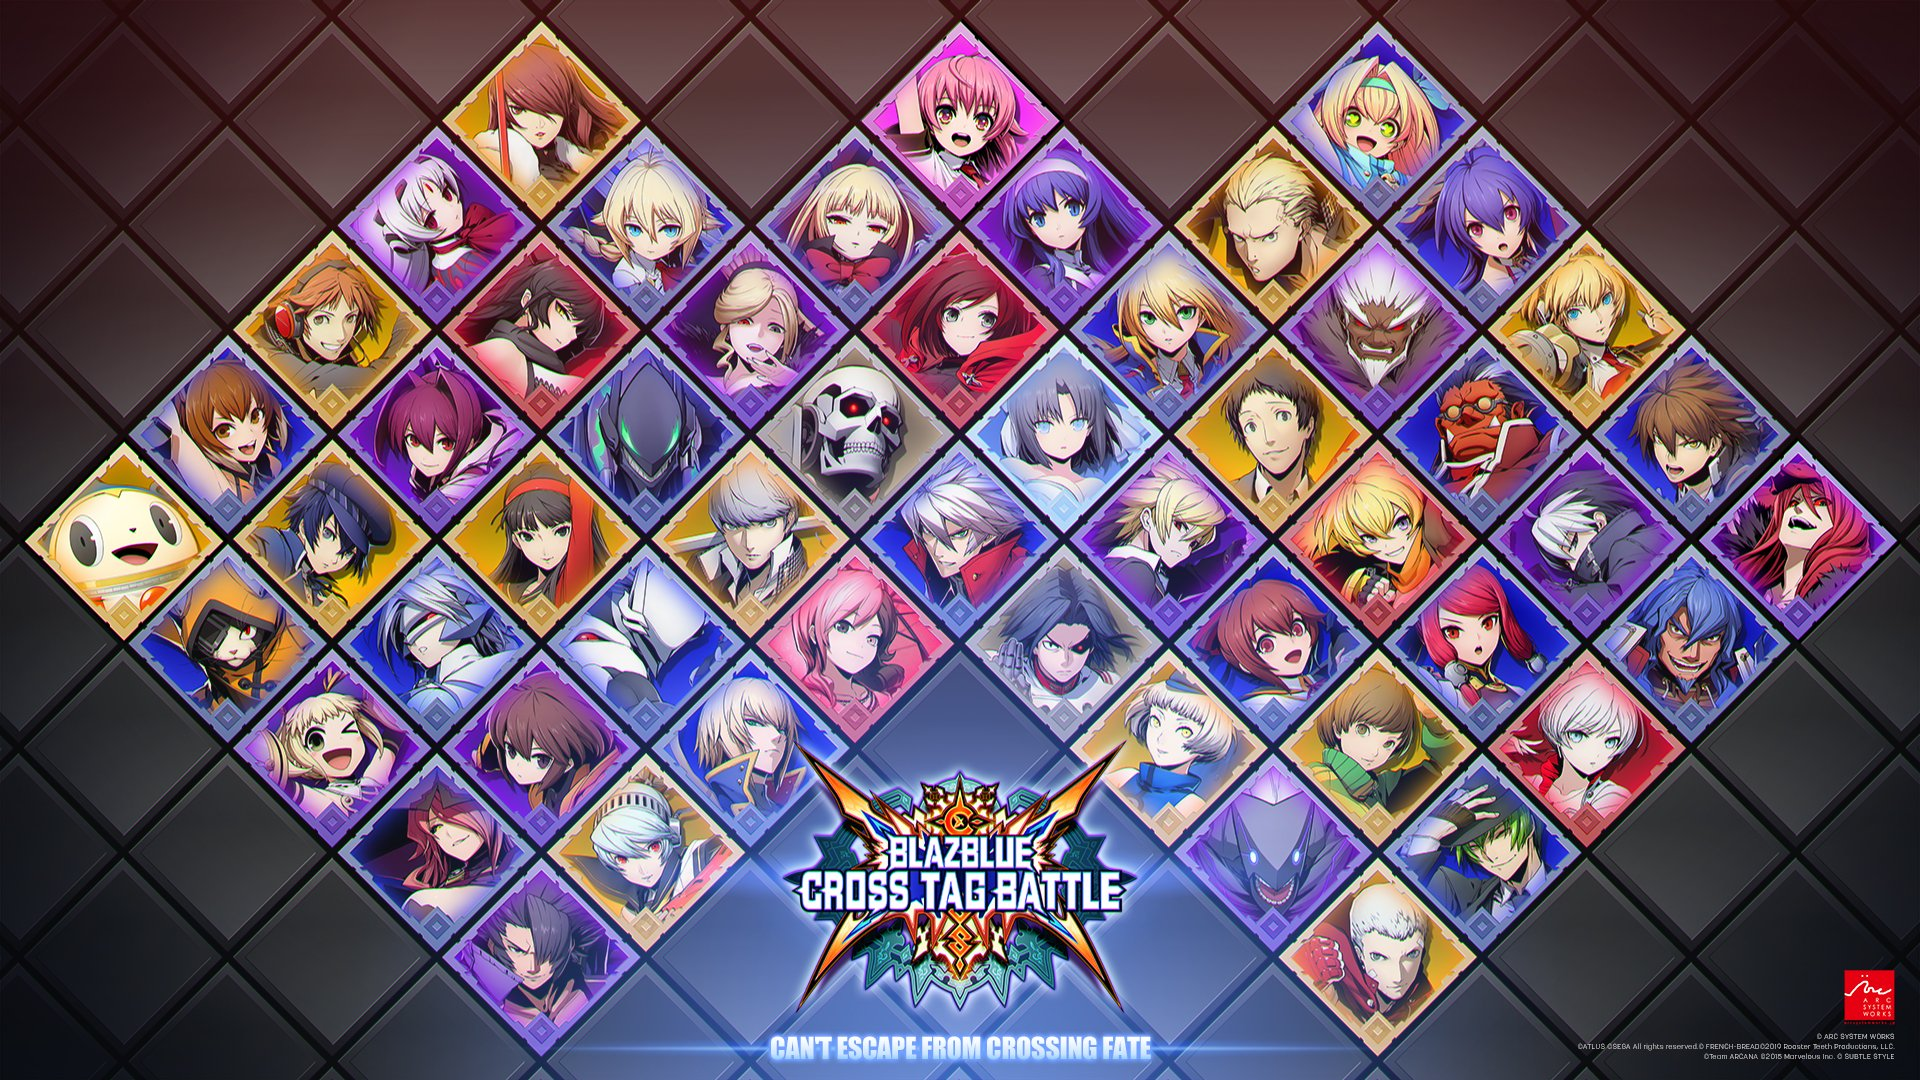 BlazBlue Cross Tag Battle's digital release to be replaced on Nov. 21st, 2019